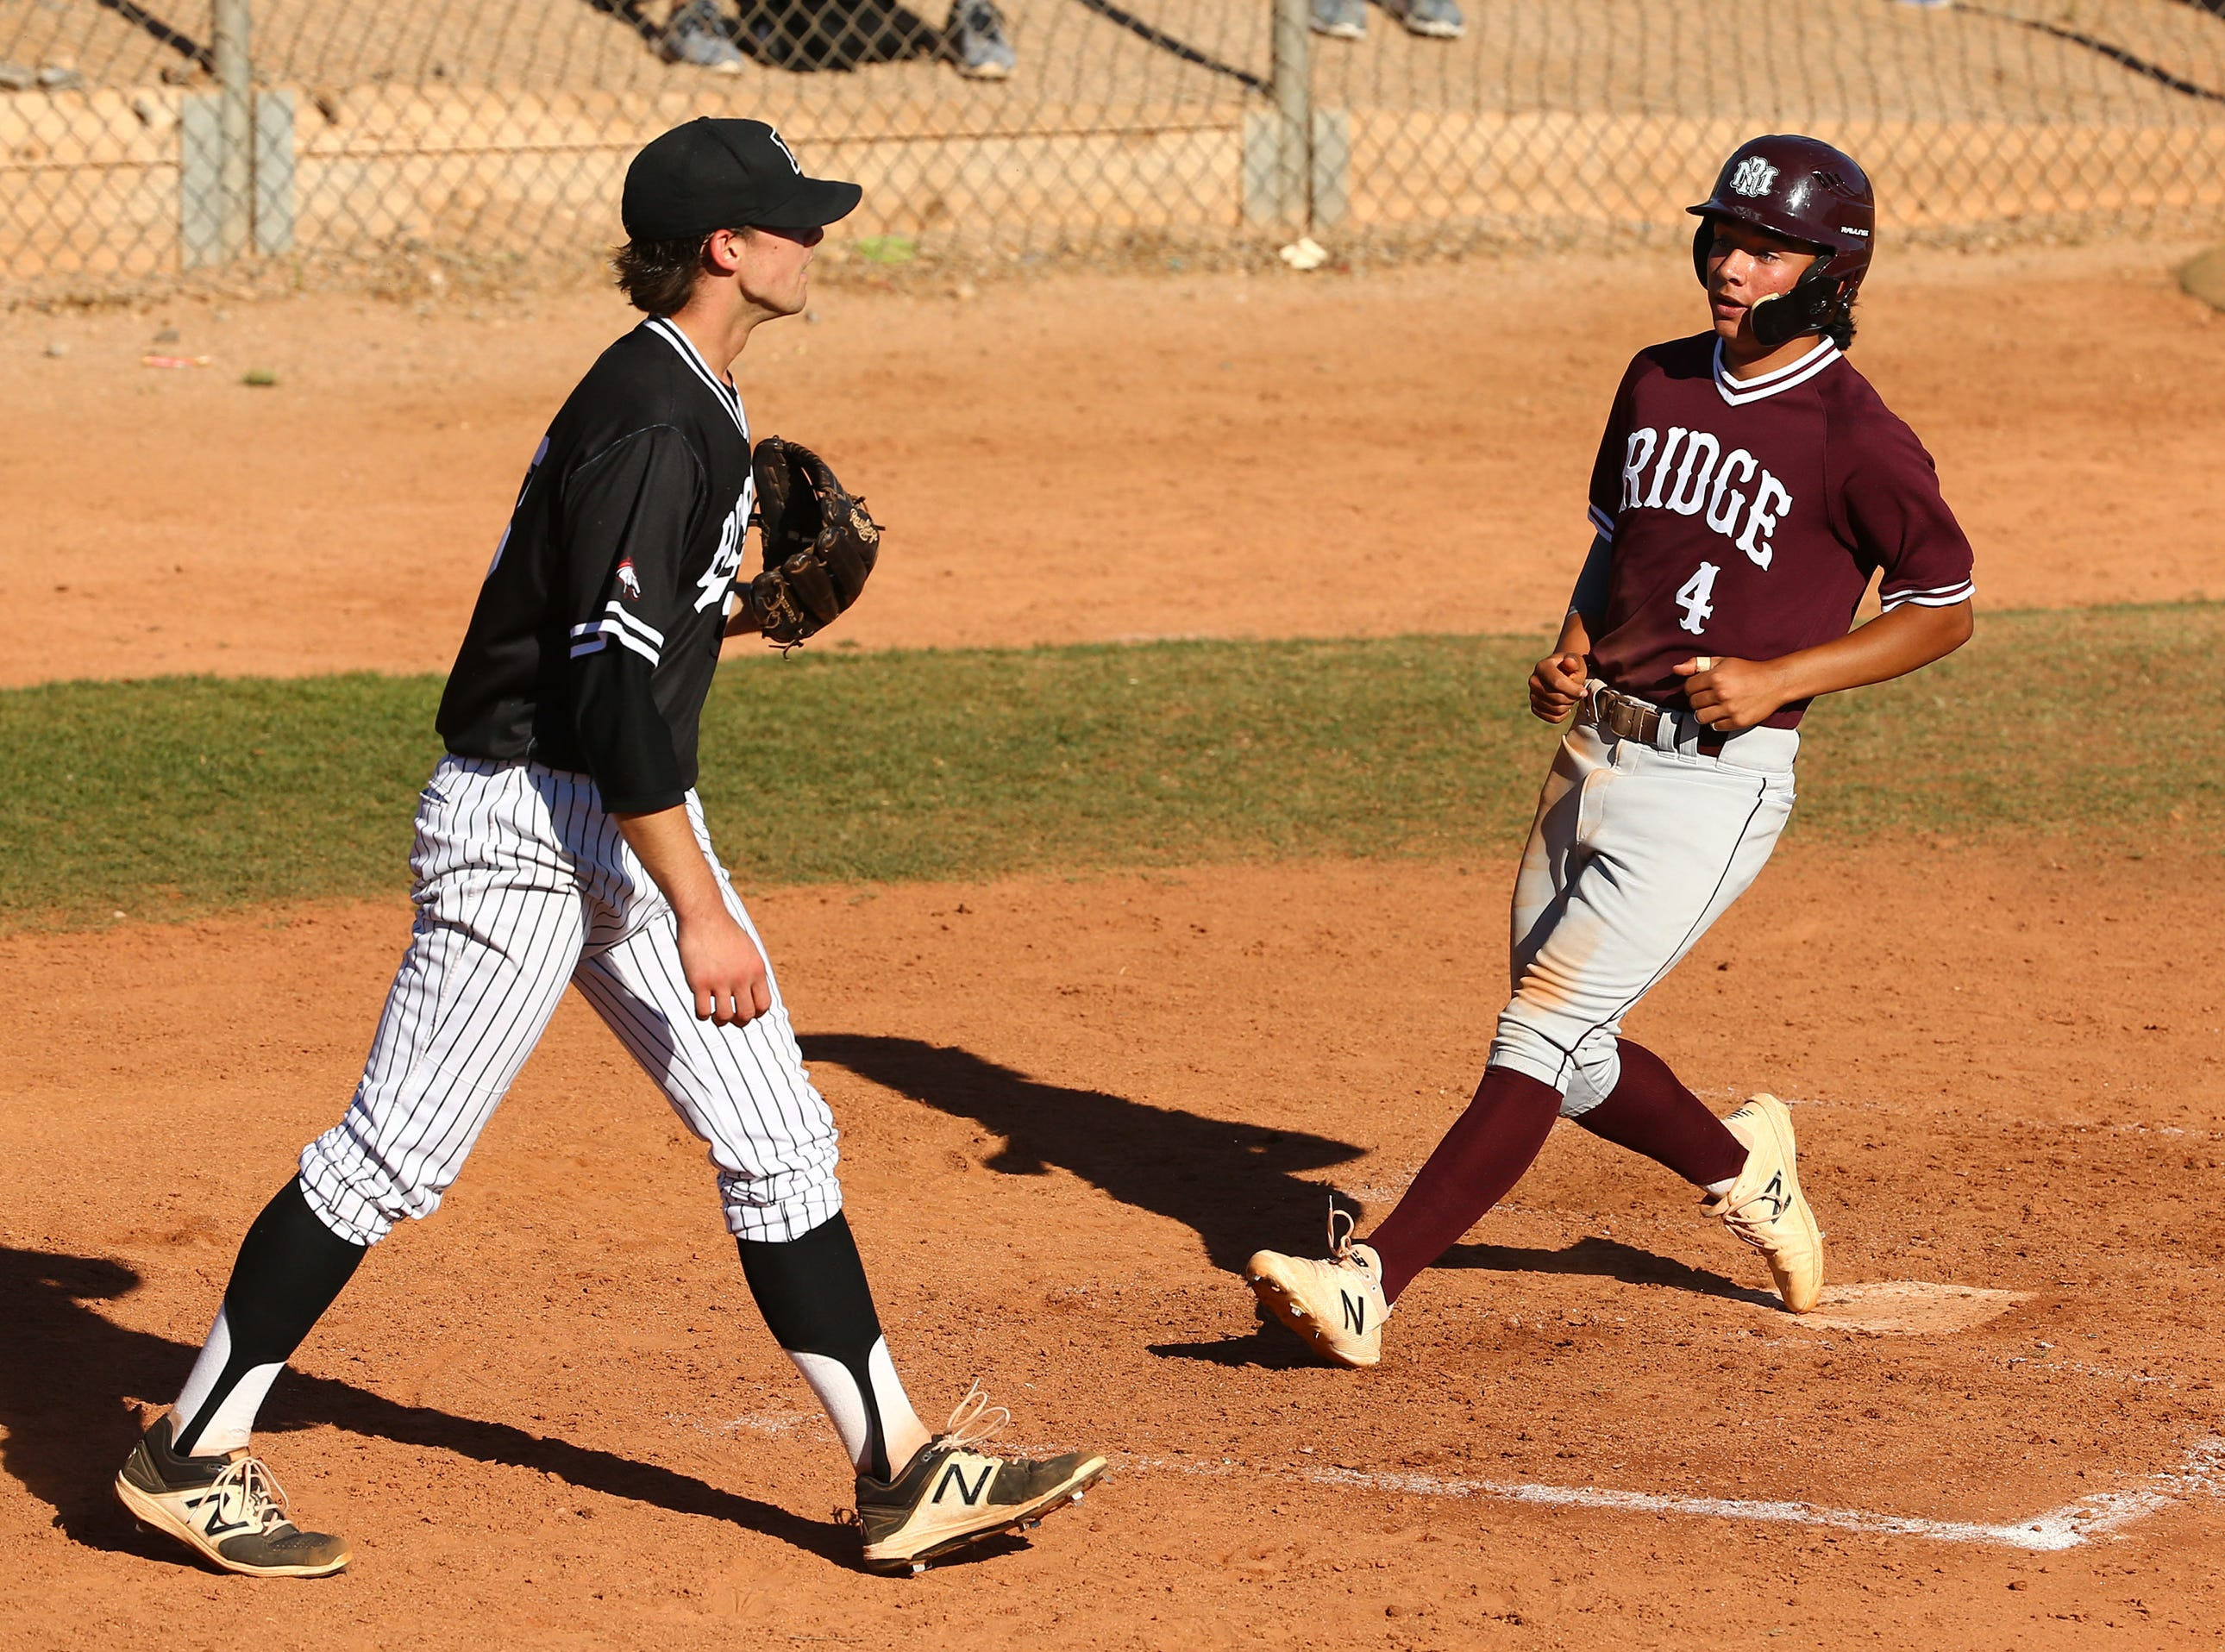 Mountain Ridge High's Travis Warinner (4) scores against Brophy Prep in the third inning on Apr. 24, 2019 in Phoenix, Ariz.